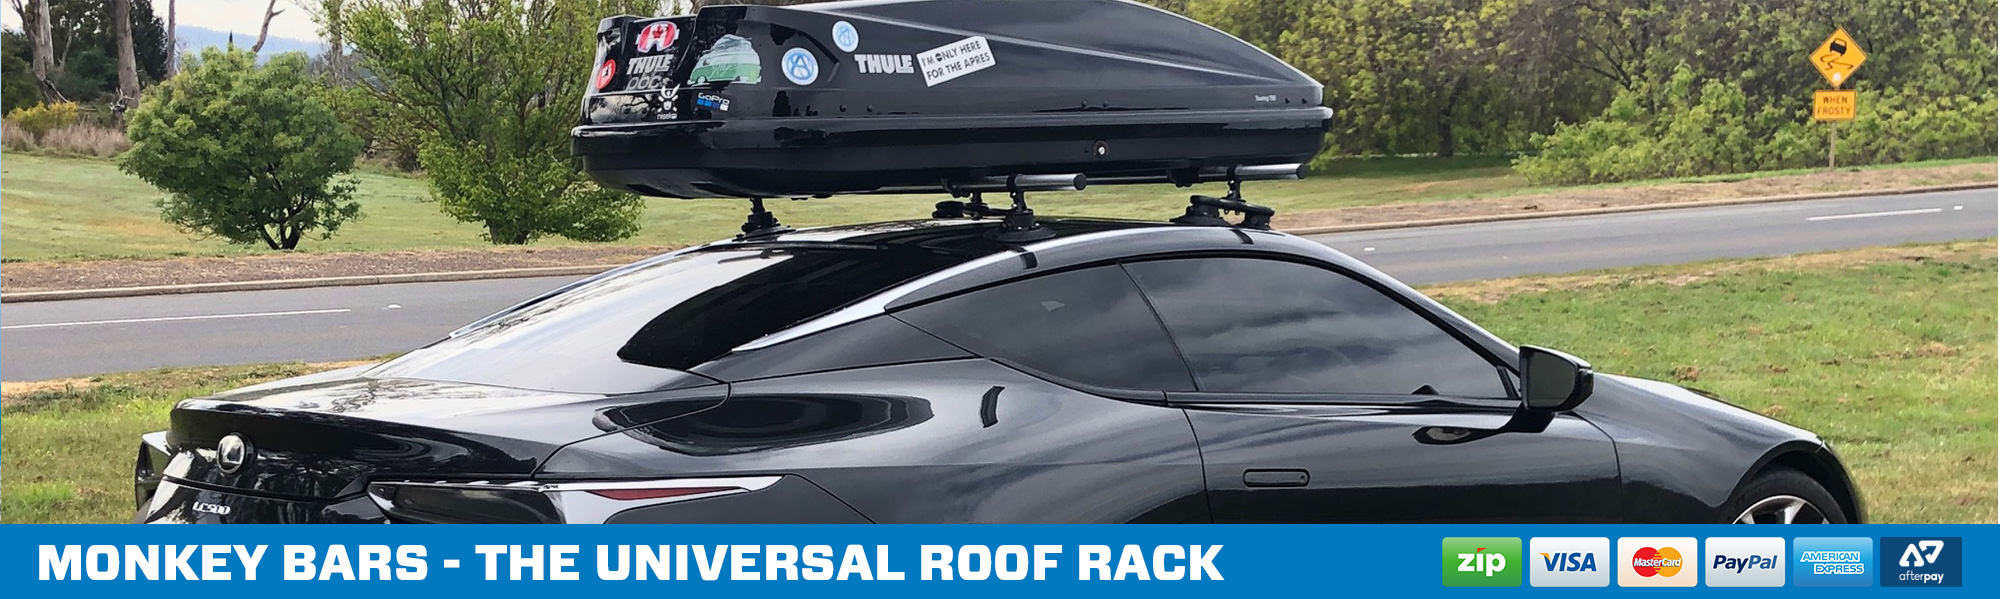 SeaSucker Monkey Bars - The Modular Roof Rack System